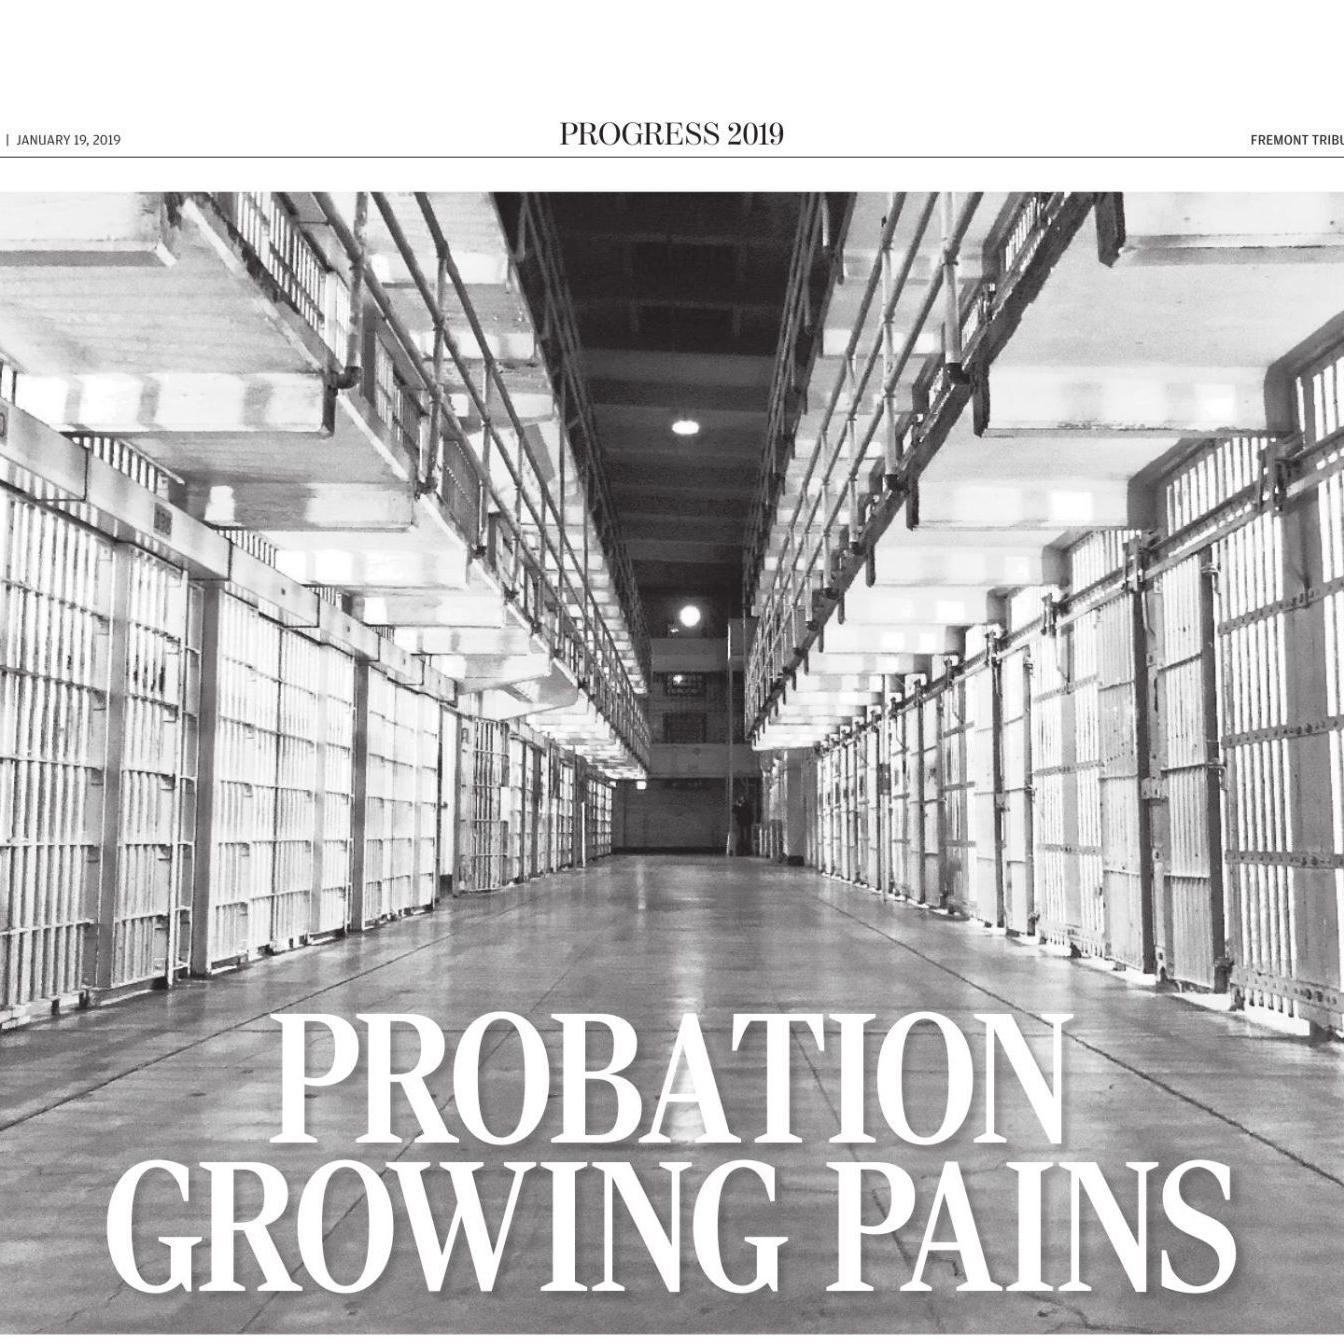 """Progress 2019: New probation laws see """"growing pains"""" 